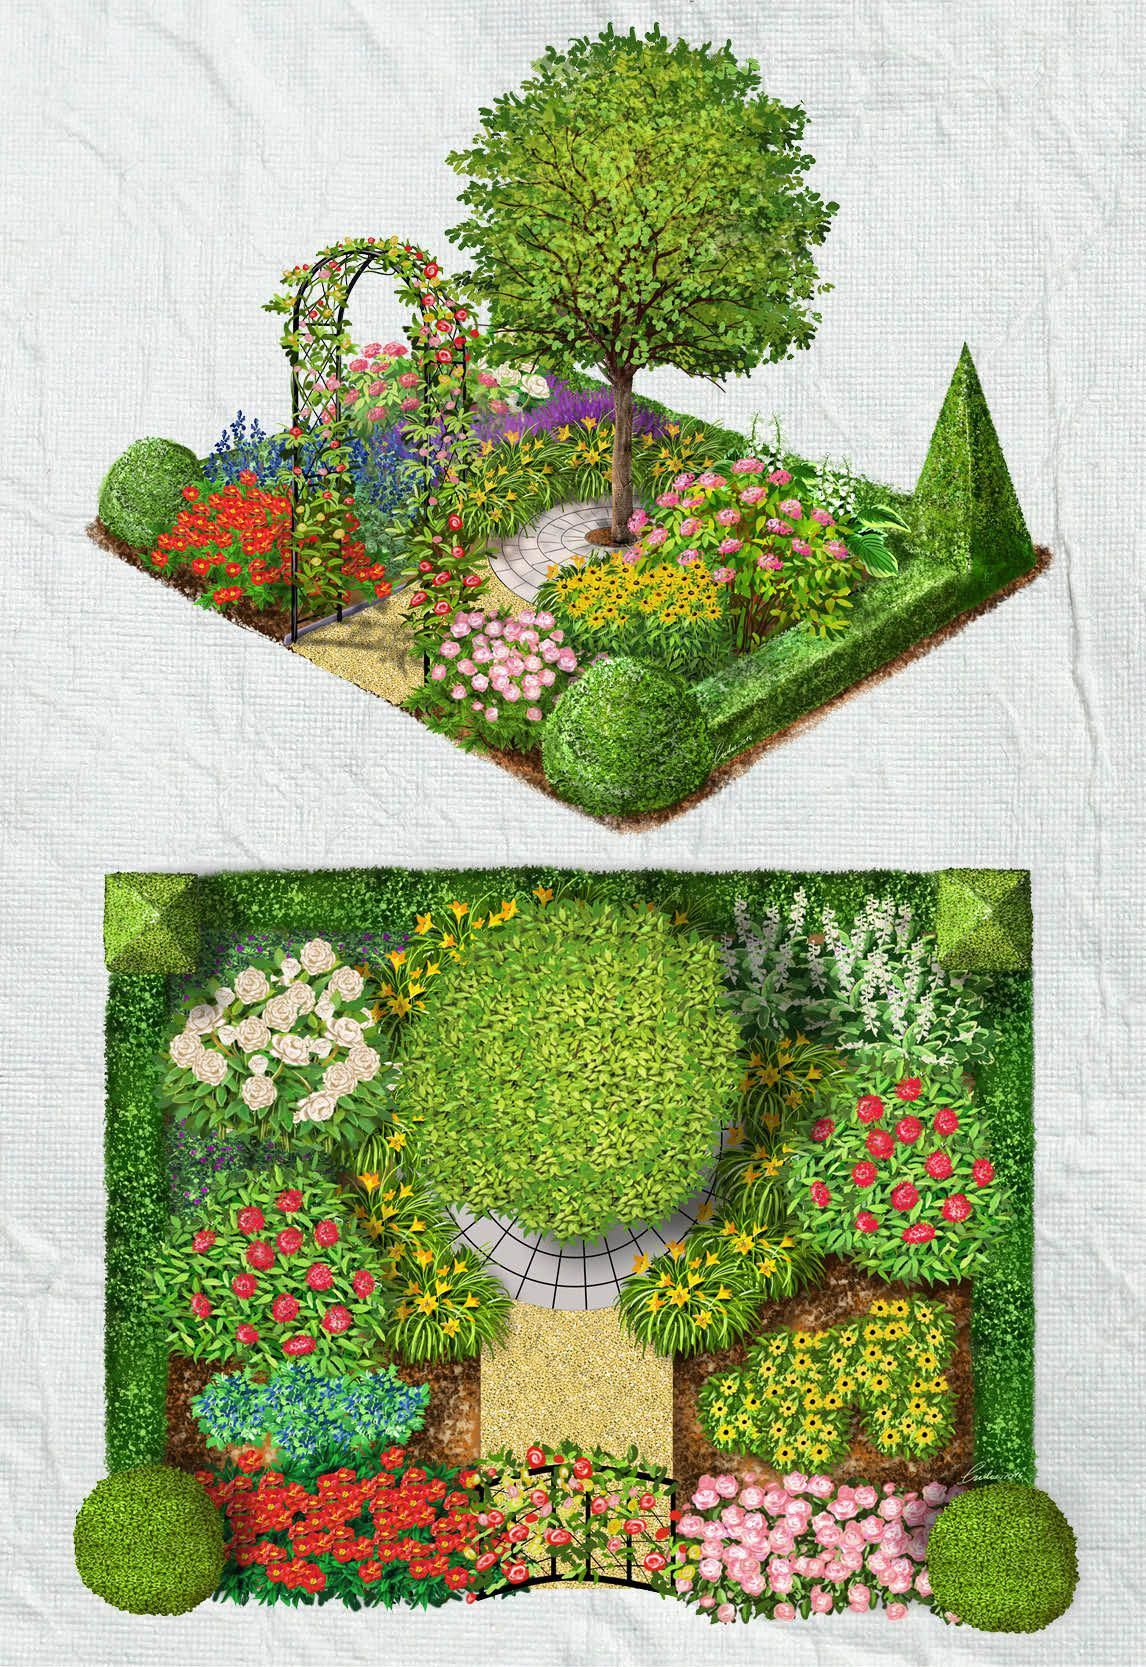 Advice For Growing Beautiful Flowers Produce And Other Plants Useful Garden Ideas And Tips Garden Design Plans Hard Landscaping Ideas Garden Design